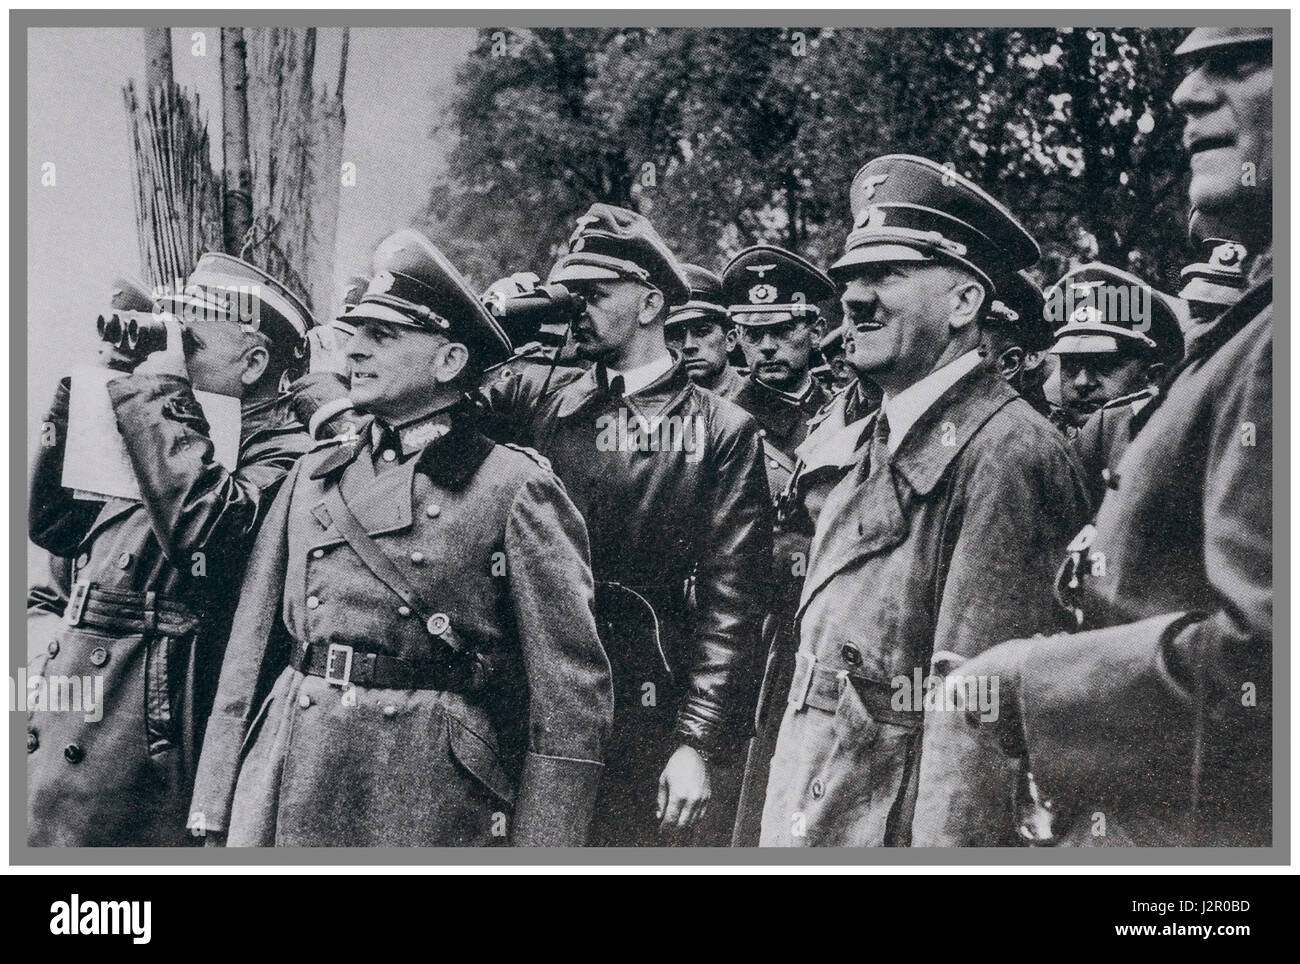 1940's World War 2 German Nazi Propaganda photograph of a happy Führer Adolf Hitler in uniform with his - Stock Image